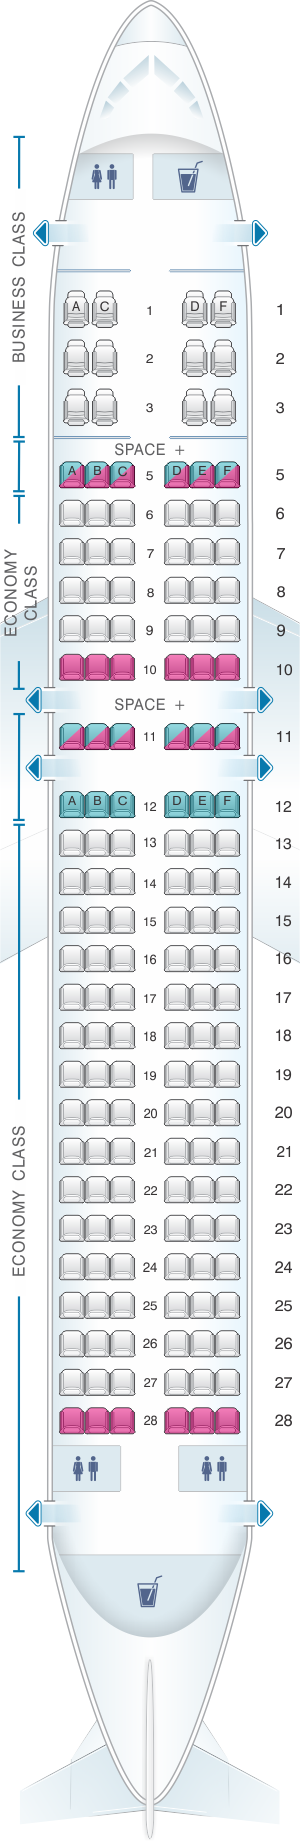 Seat map for LATAM Airlines Brasil Airbus A320 156PAX